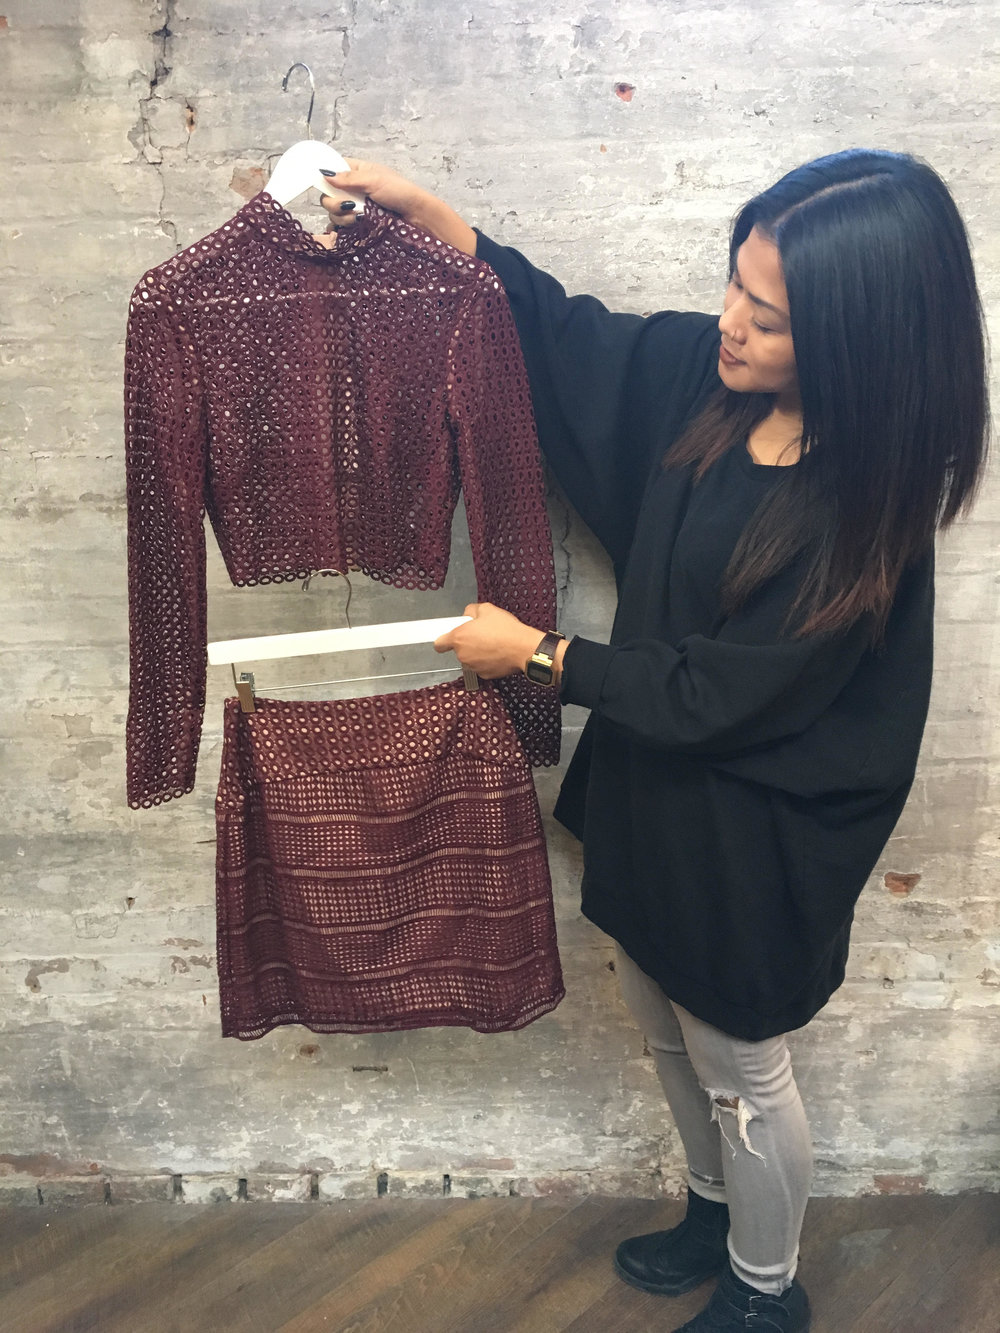 Bee's Pick: Keepsake Top $113 & Skirt $120 Throw this on for a night our or split up the set for a more casual look. Pair the skirt with a turtleneck and rock the top with a pair of high-waisted jeans.